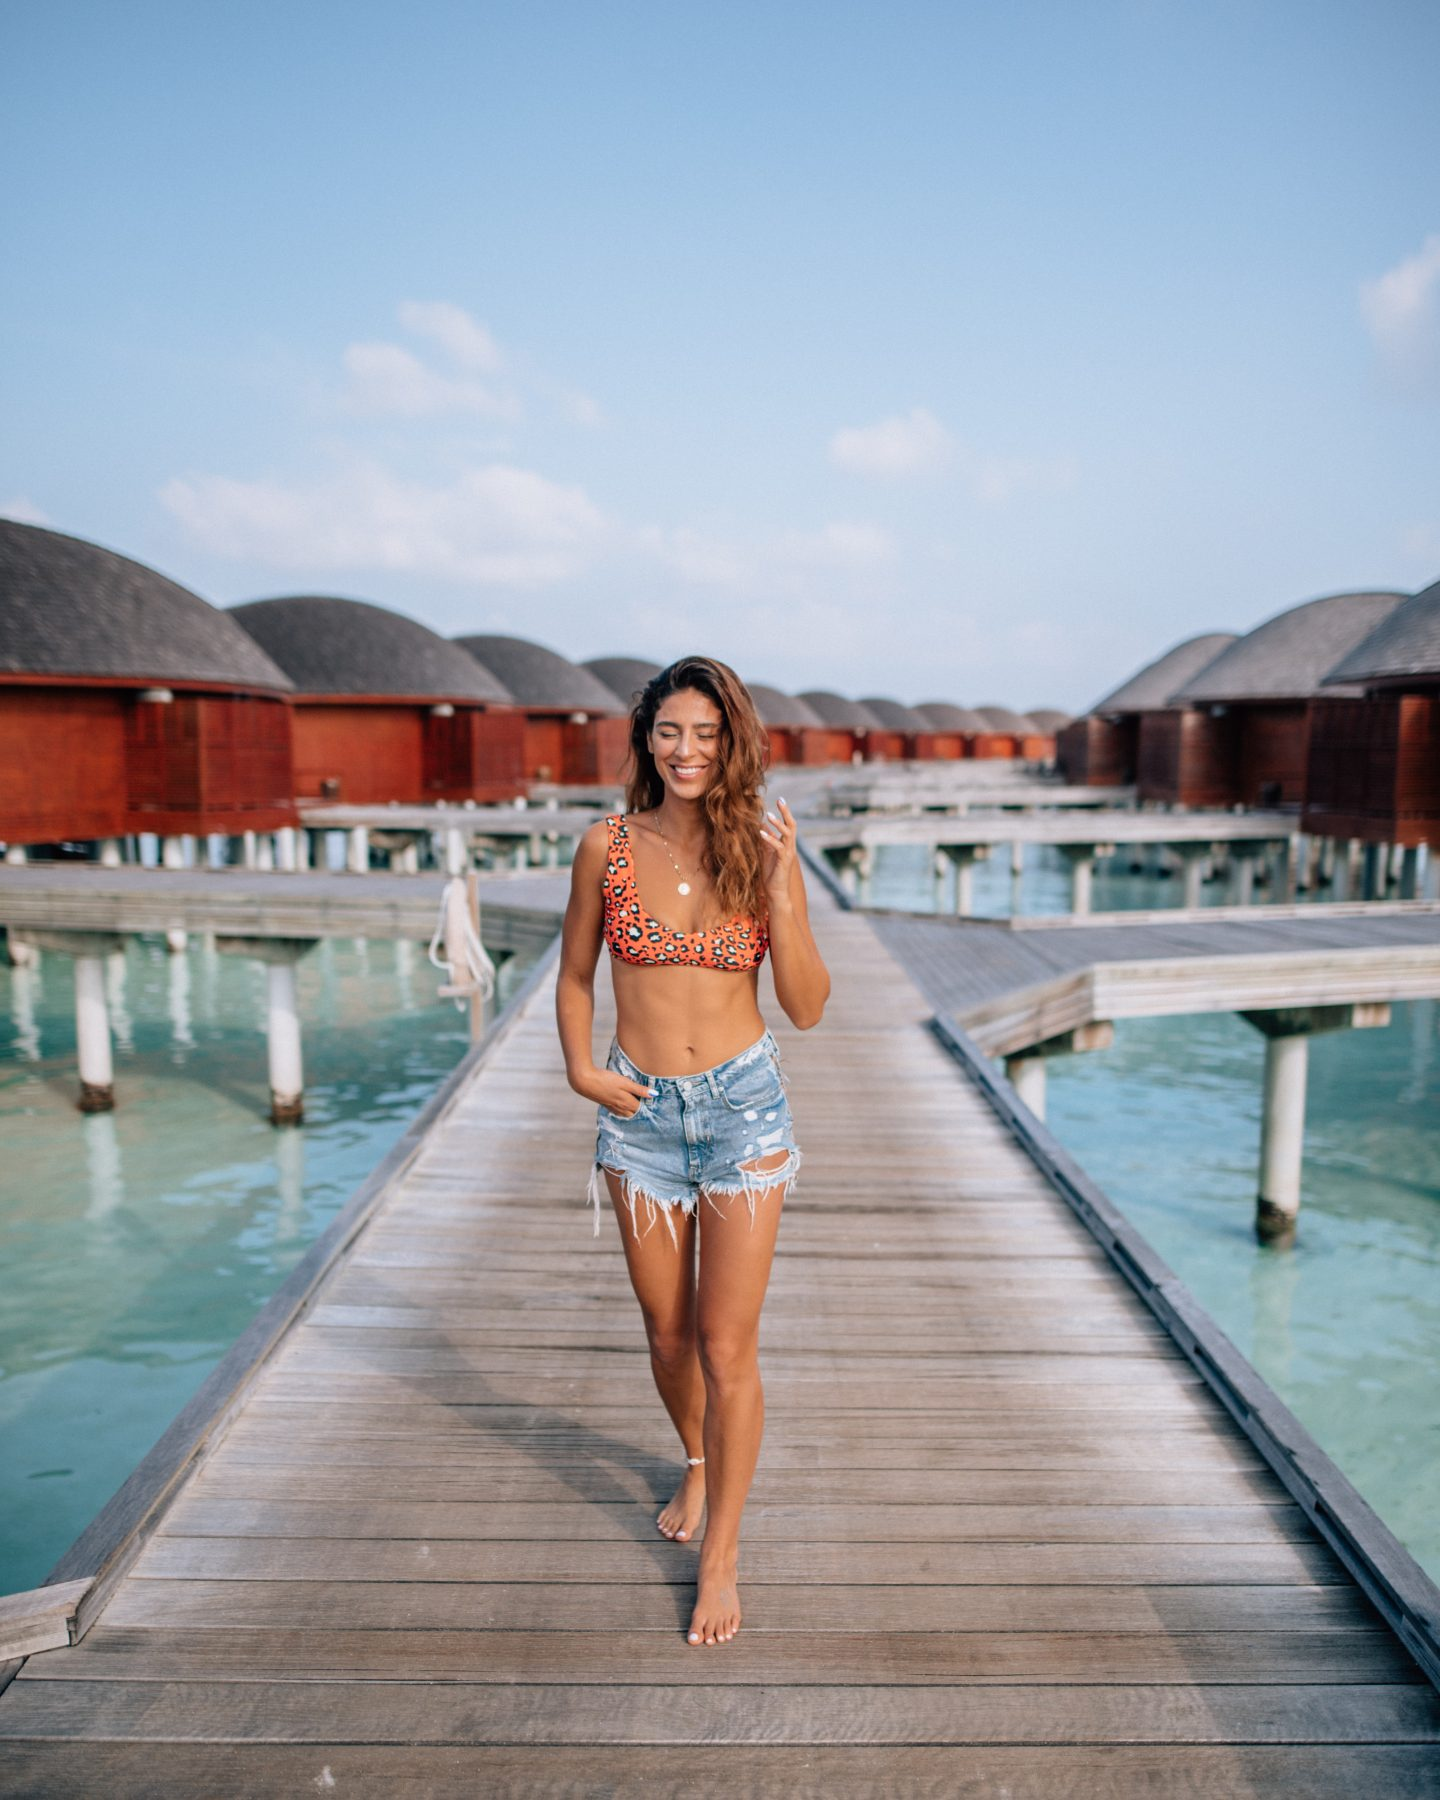 Woman on the walkway to the overwater bungalows at Anantara Dhigu in the Maldives